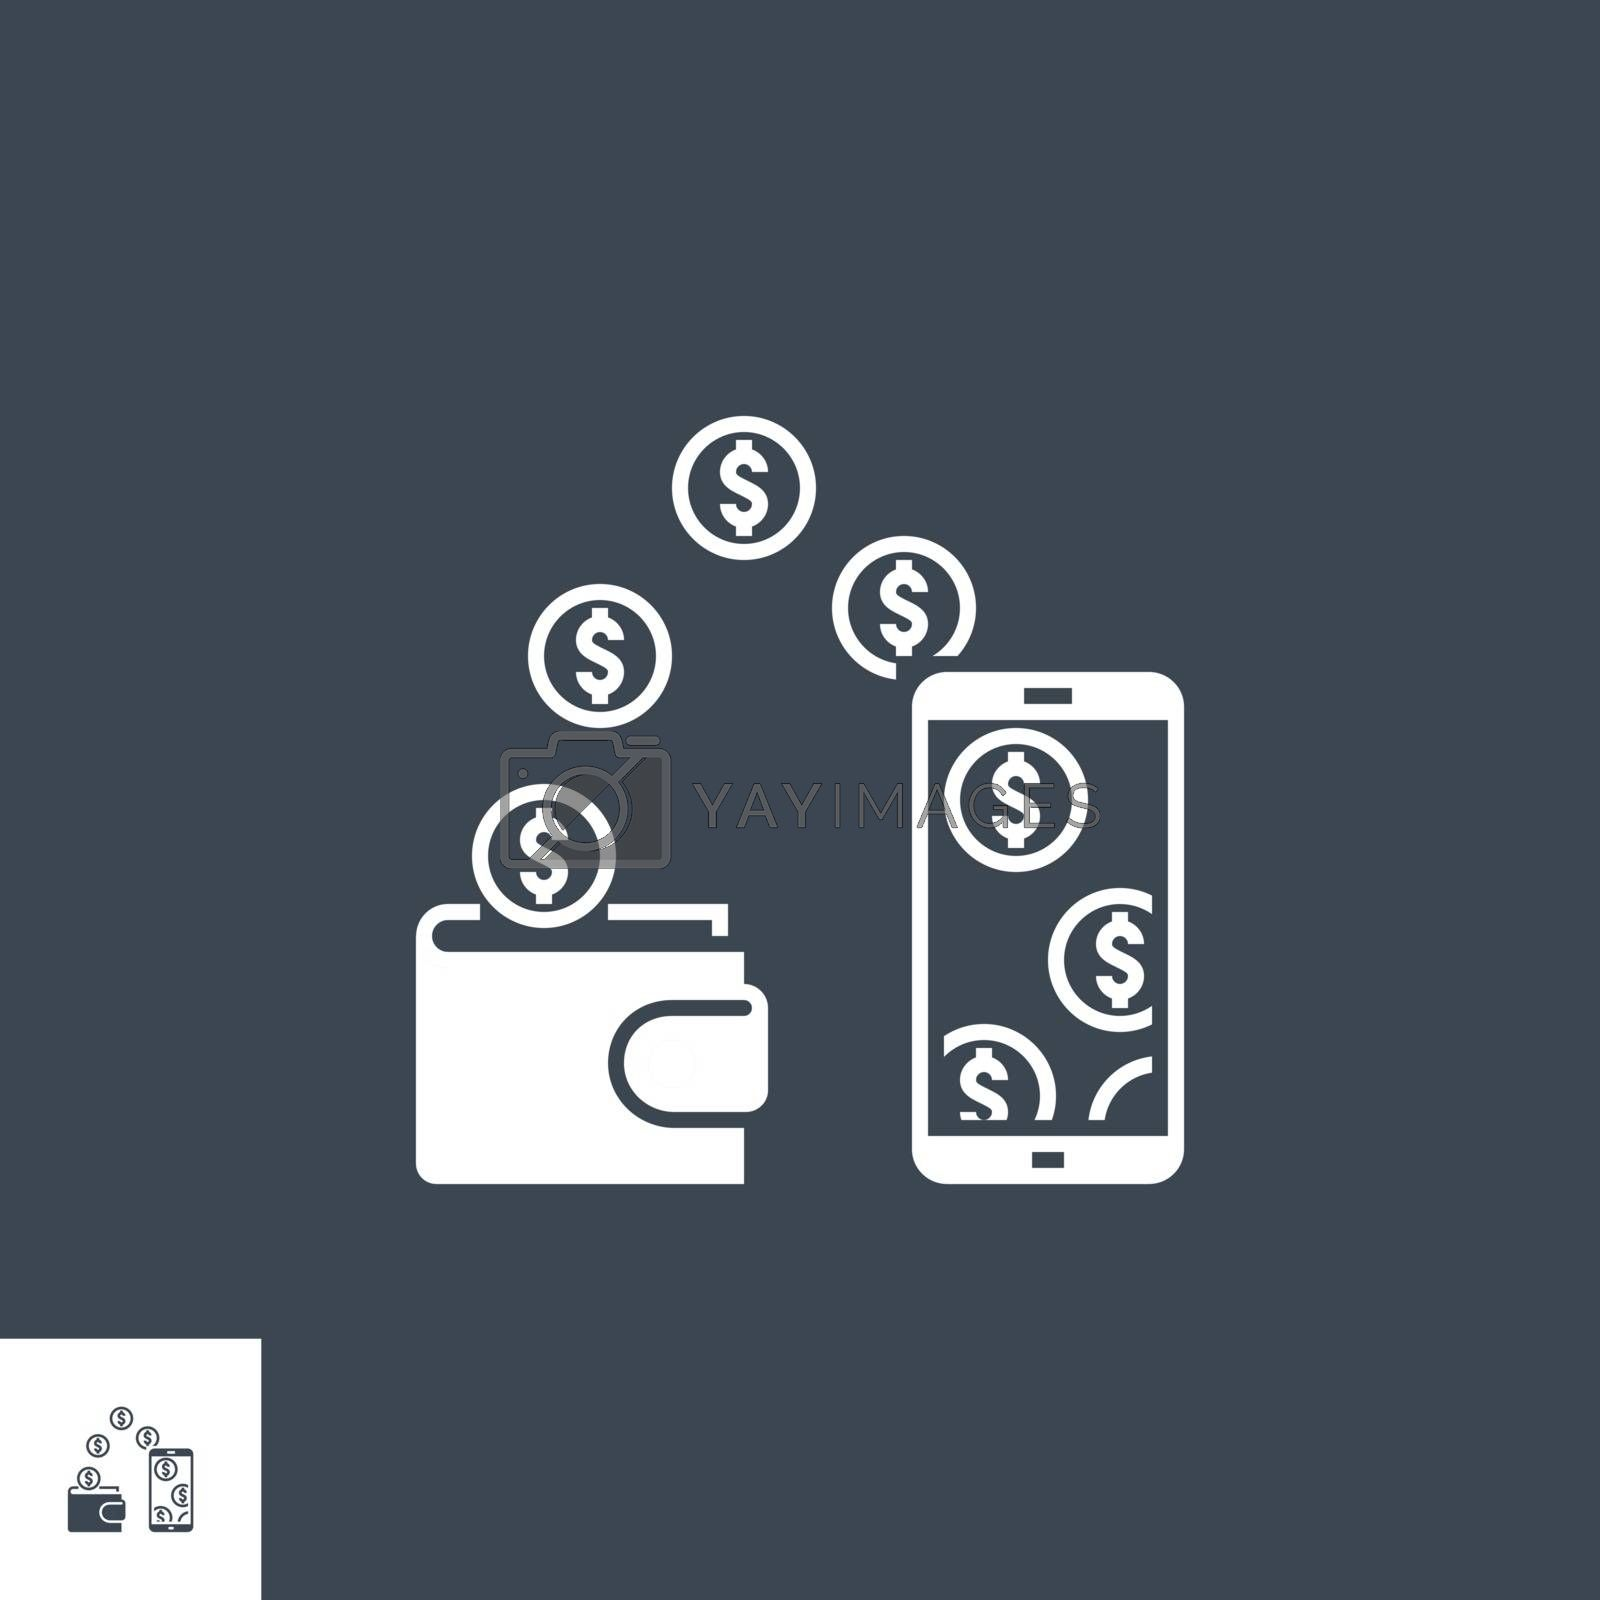 Replenishment related vector glyph icon. Isolated on black background. Vector illustration.